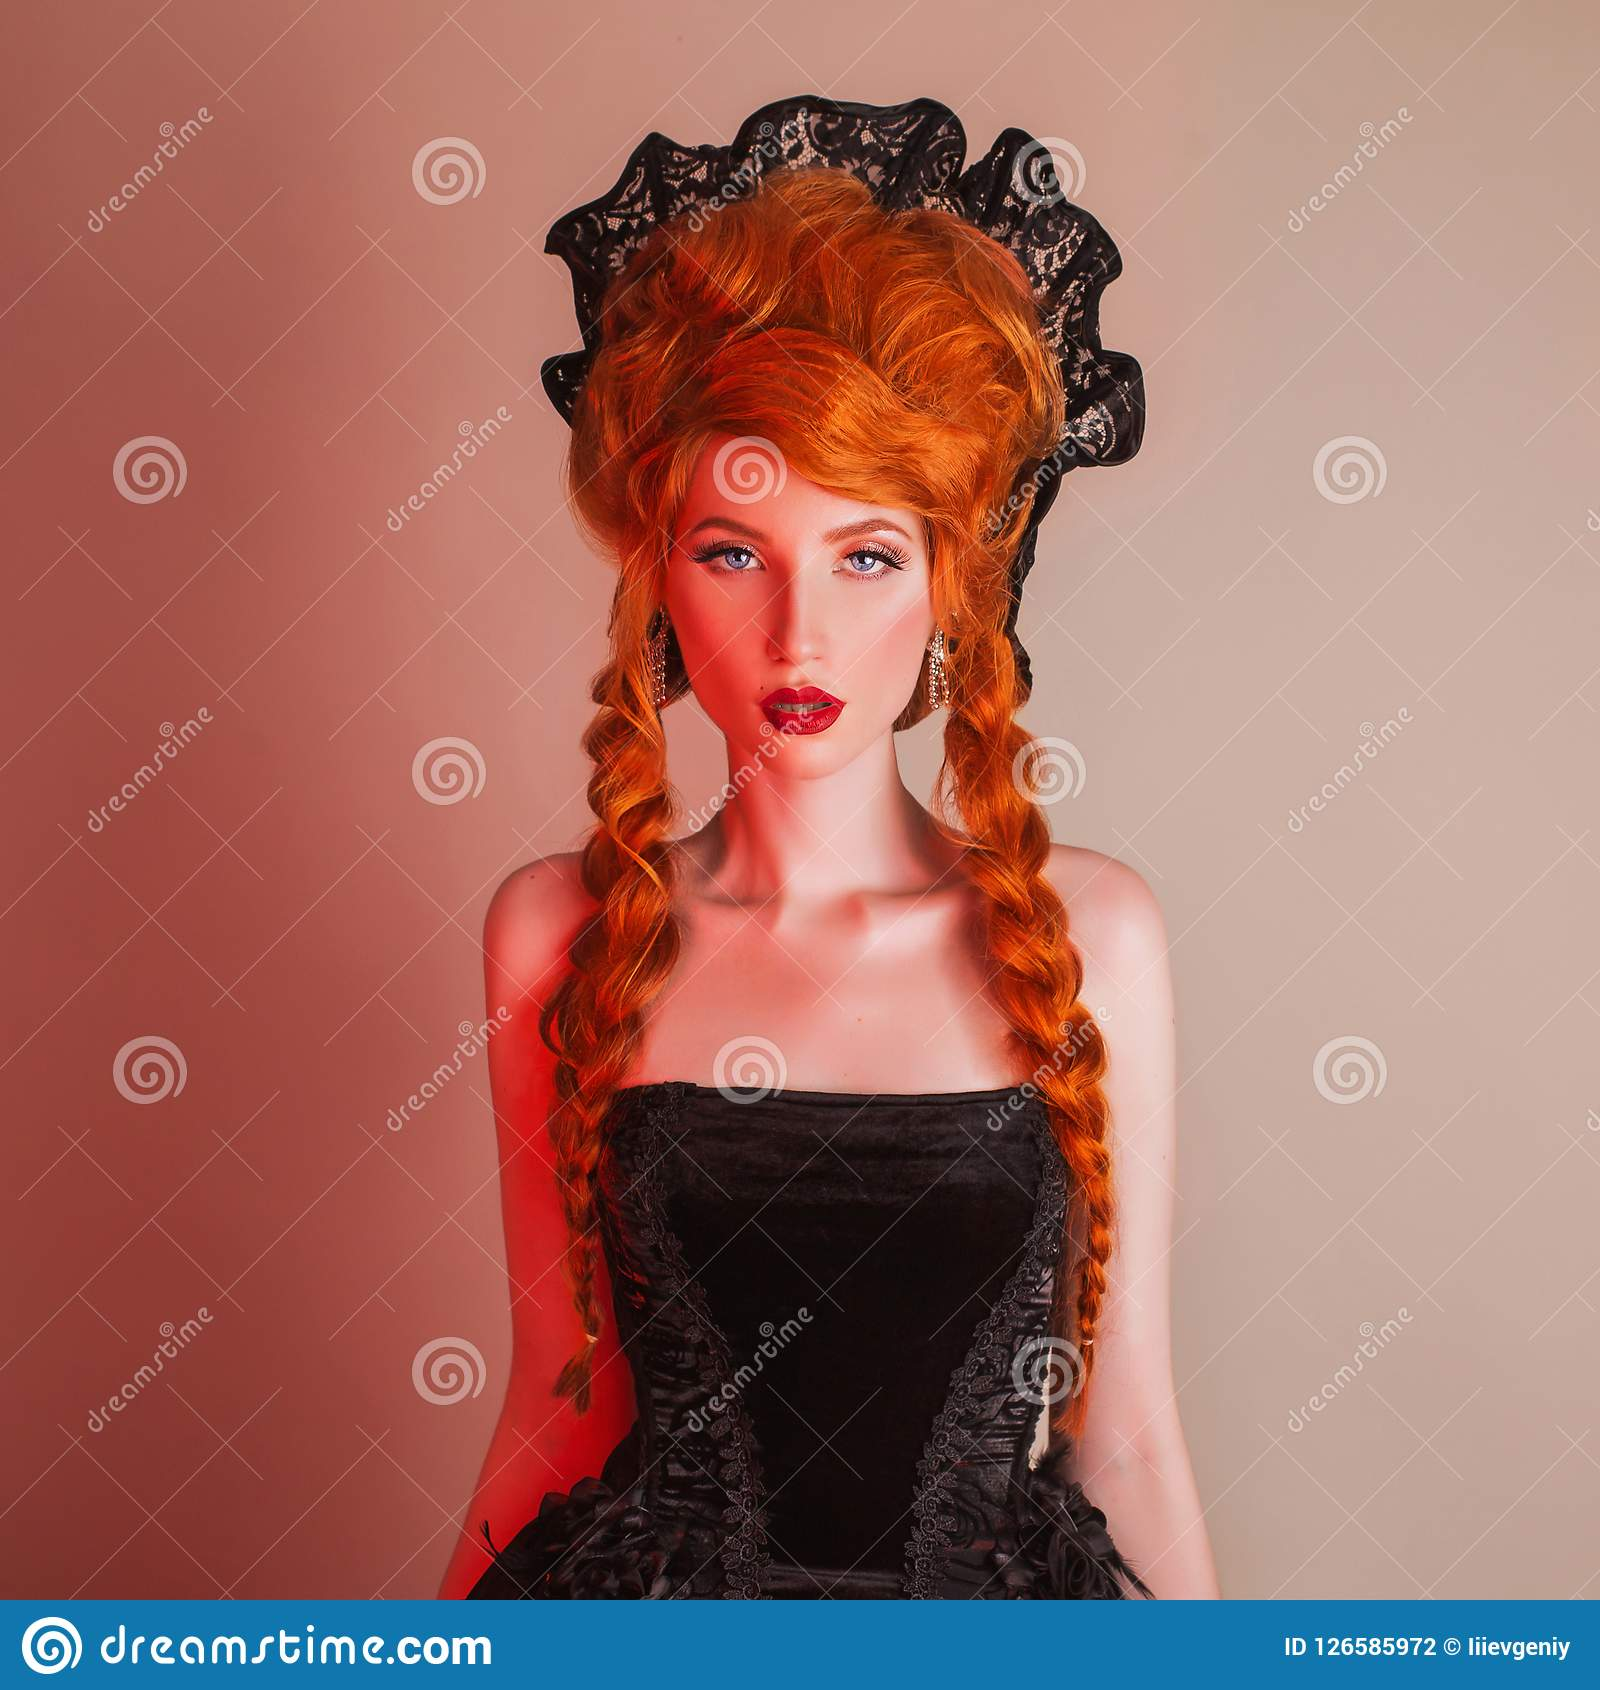 Gothic halloween clothes. Young enchanting redhead queen with hairstyle. Princess with red hair. Vampire with pale skin. Mystical